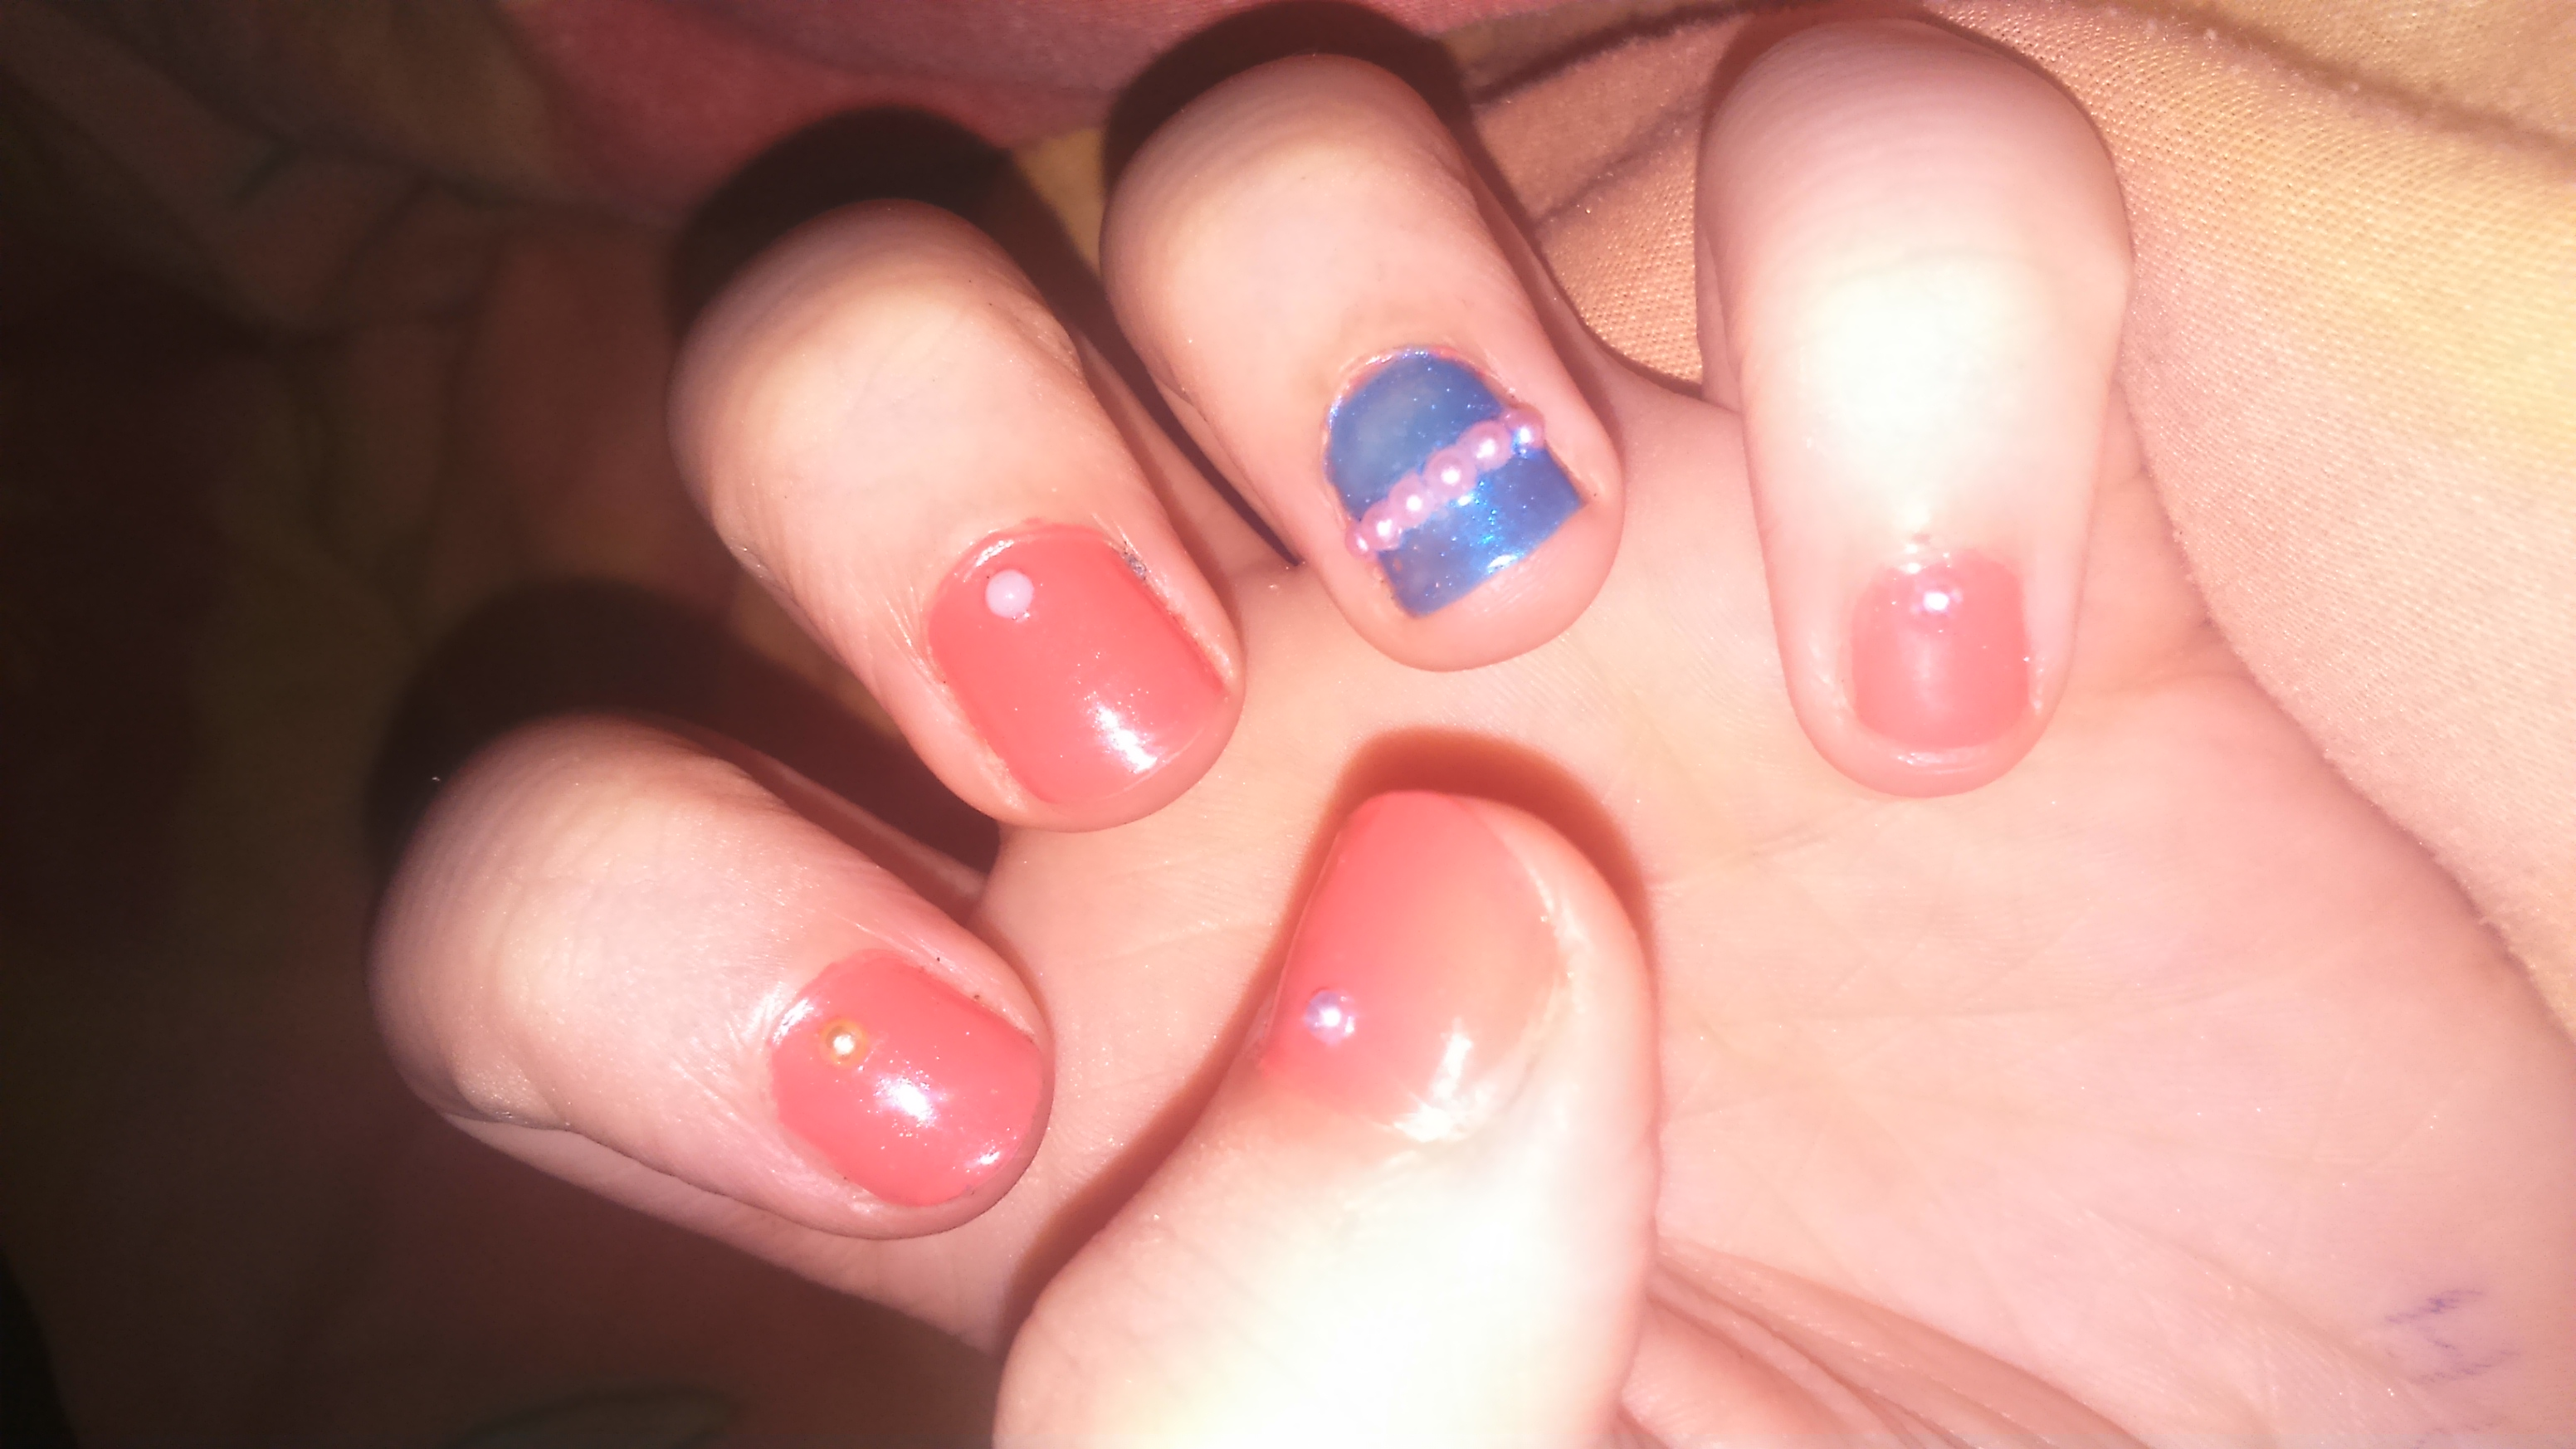 pick two nail varnish colors (mine are coral and blue) wait for them to dry and add a layer of topcoat. while the topcoat is still wet, add gems of the opposite color however you like. add another layer of topcoat and your done. simple and cute😏